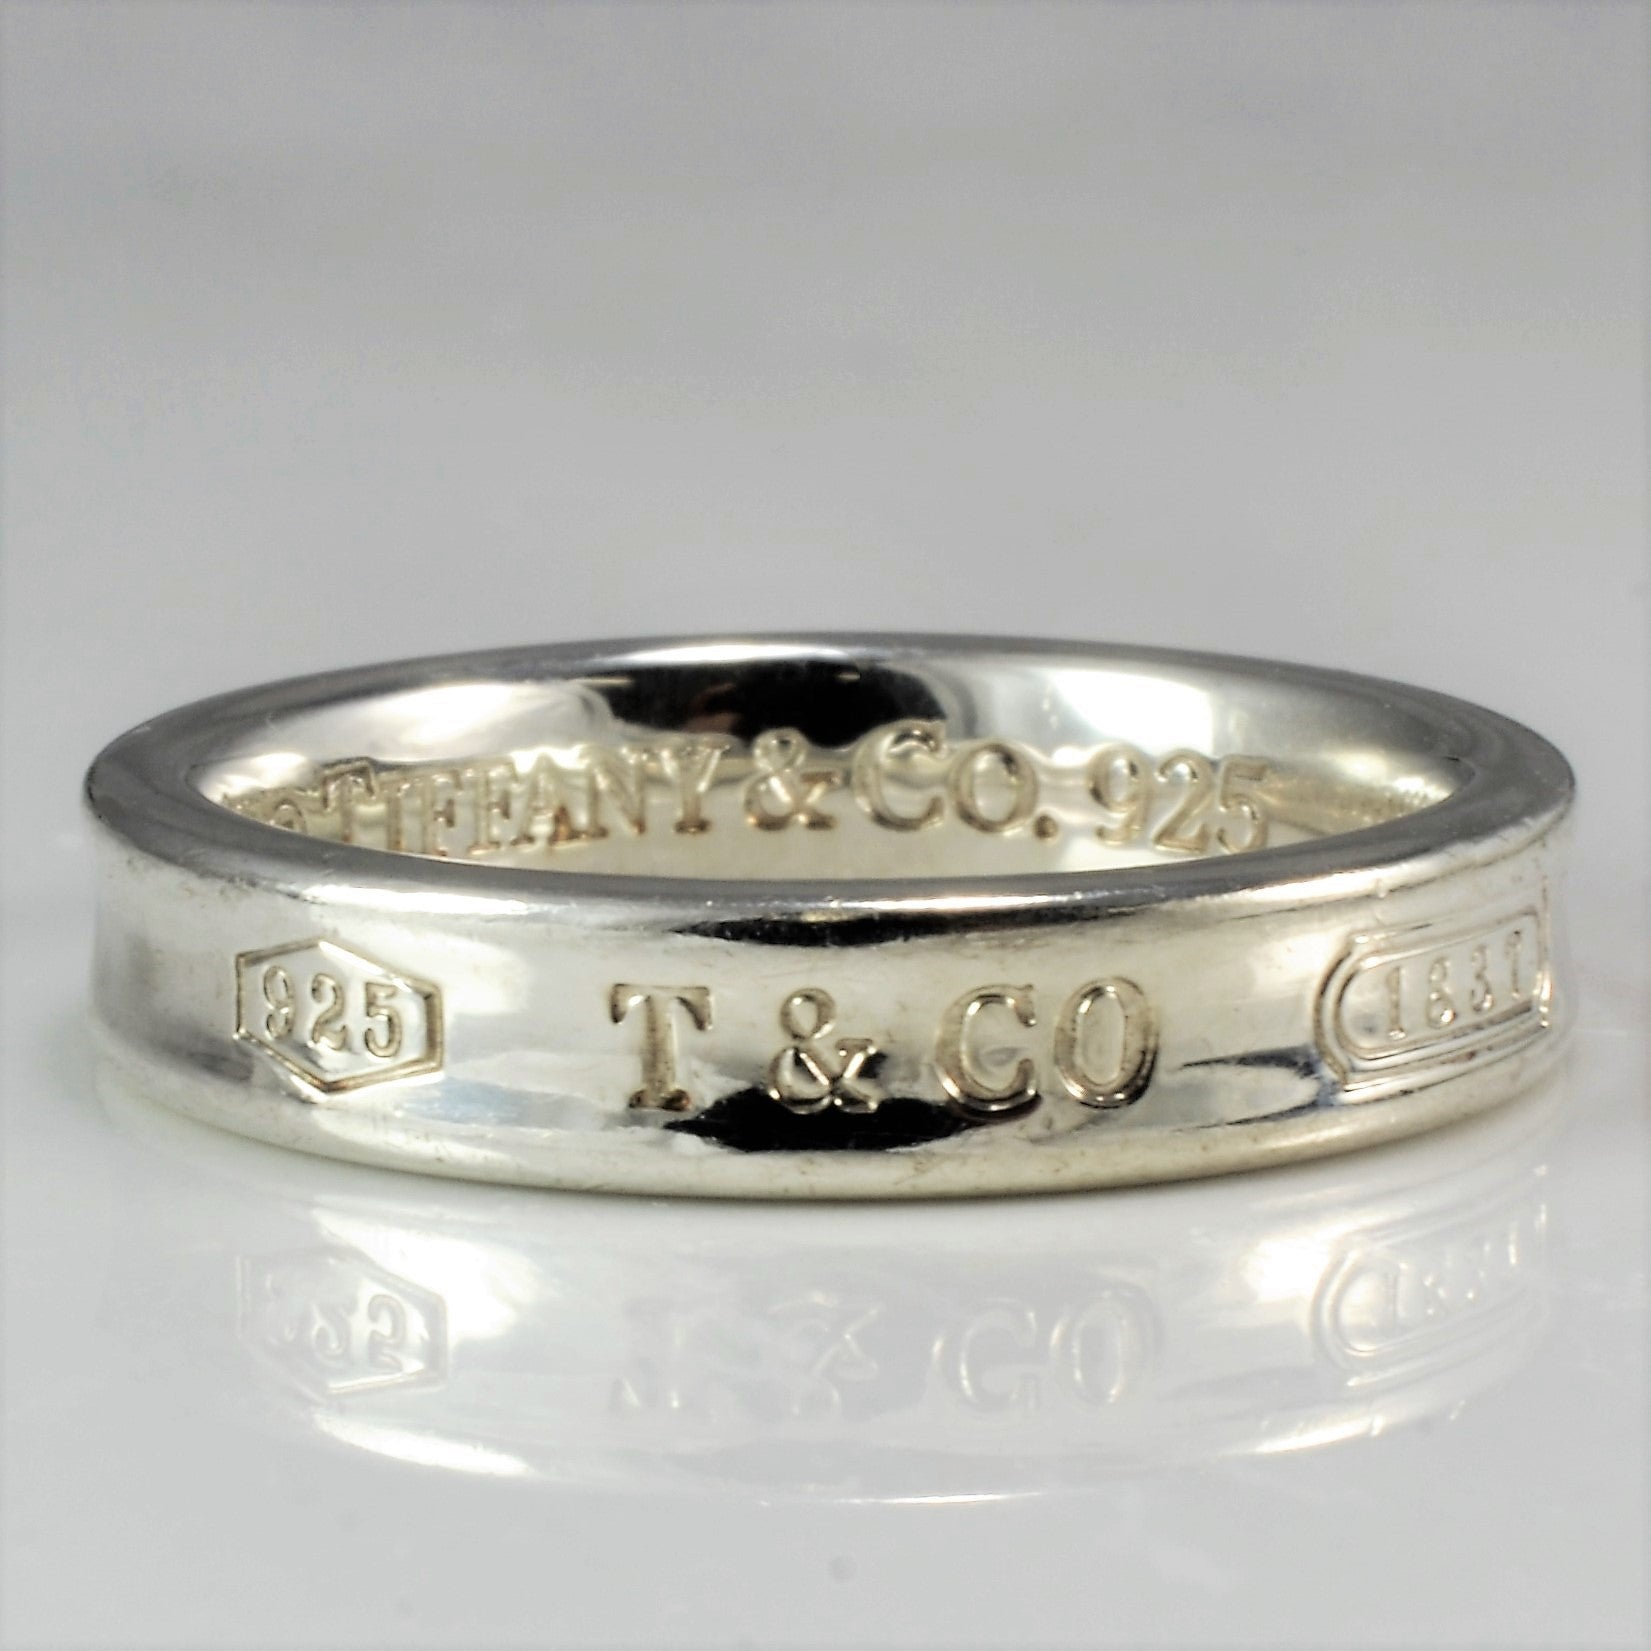 'Tiffany & Co.' 1837 Ring | SZ 6 |